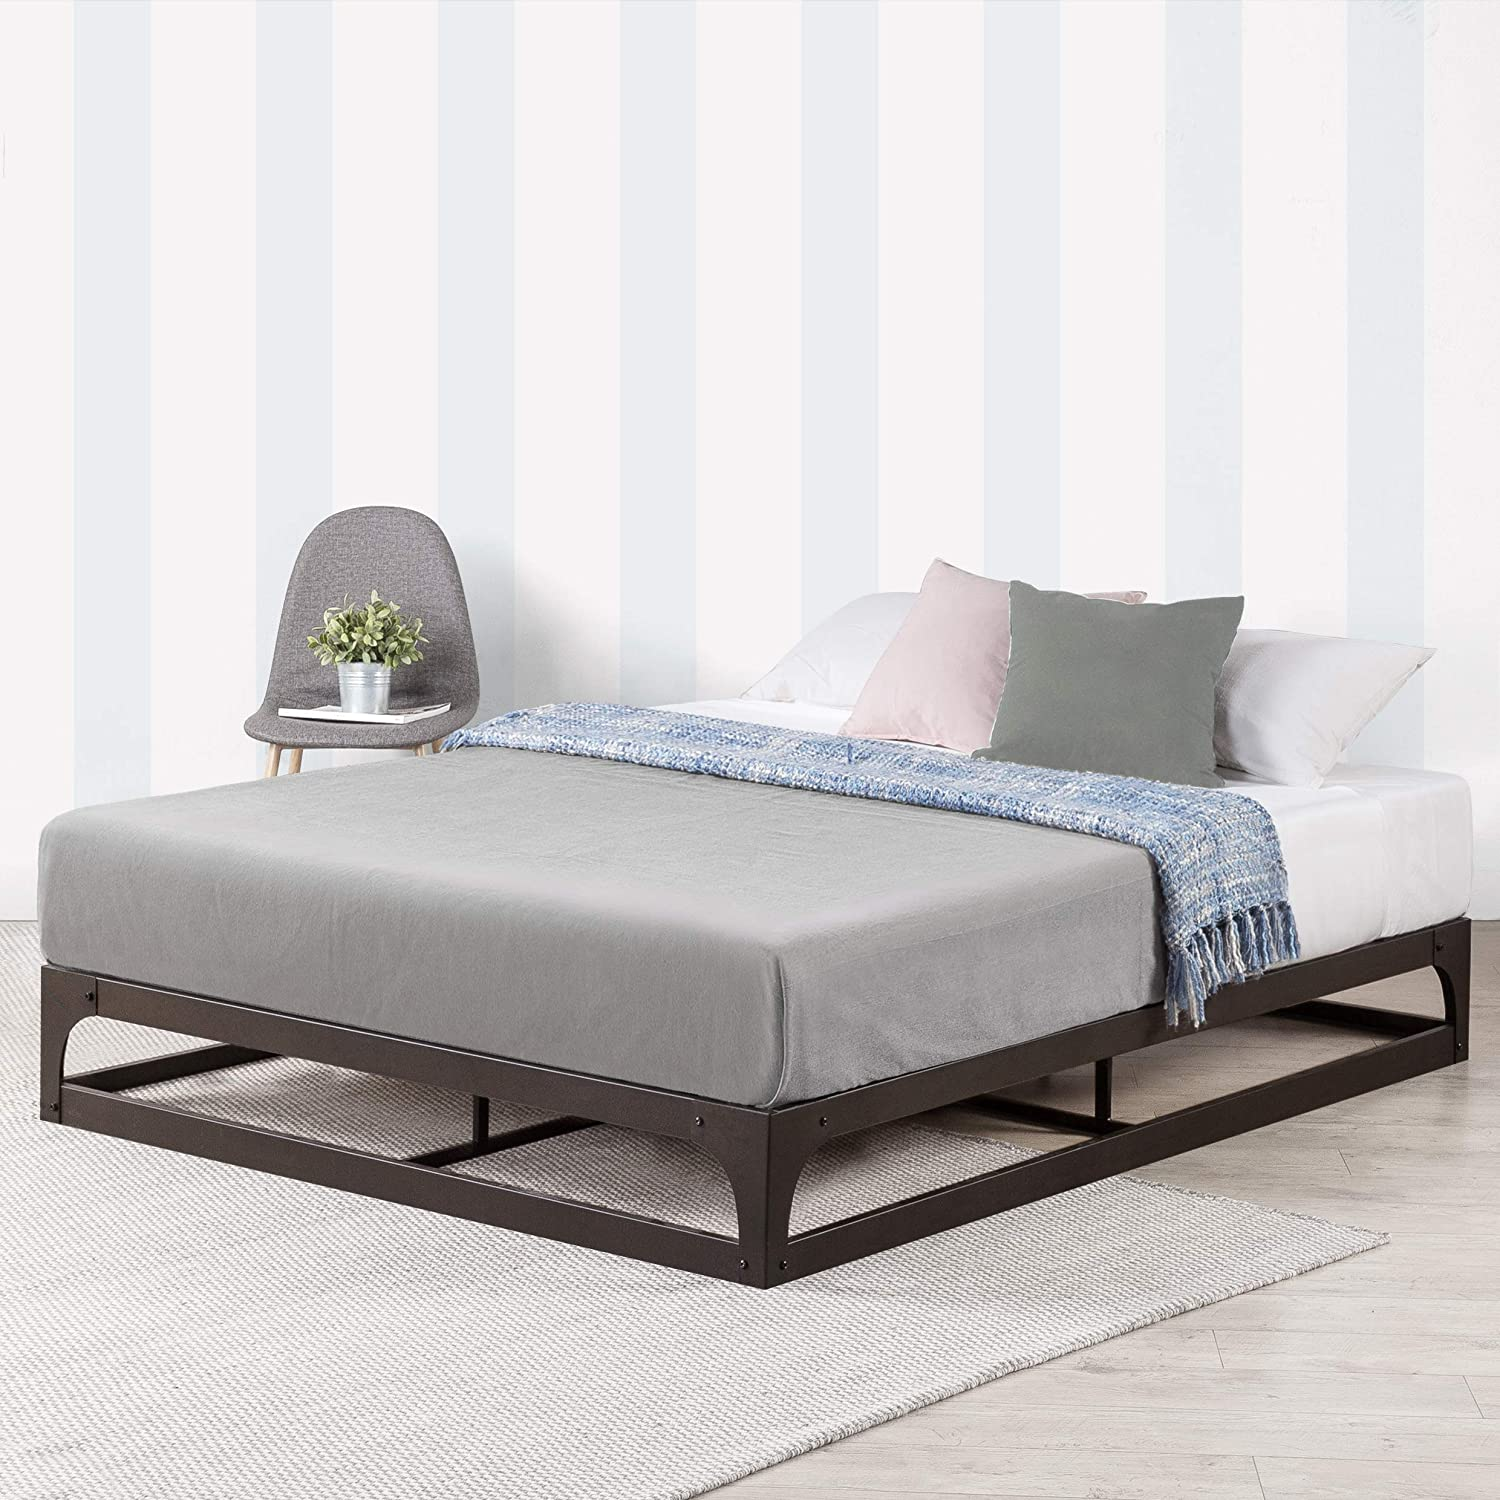 Amazon Com Mellow 9 Inch Metal Platform Bed Frame W Heavy Duty